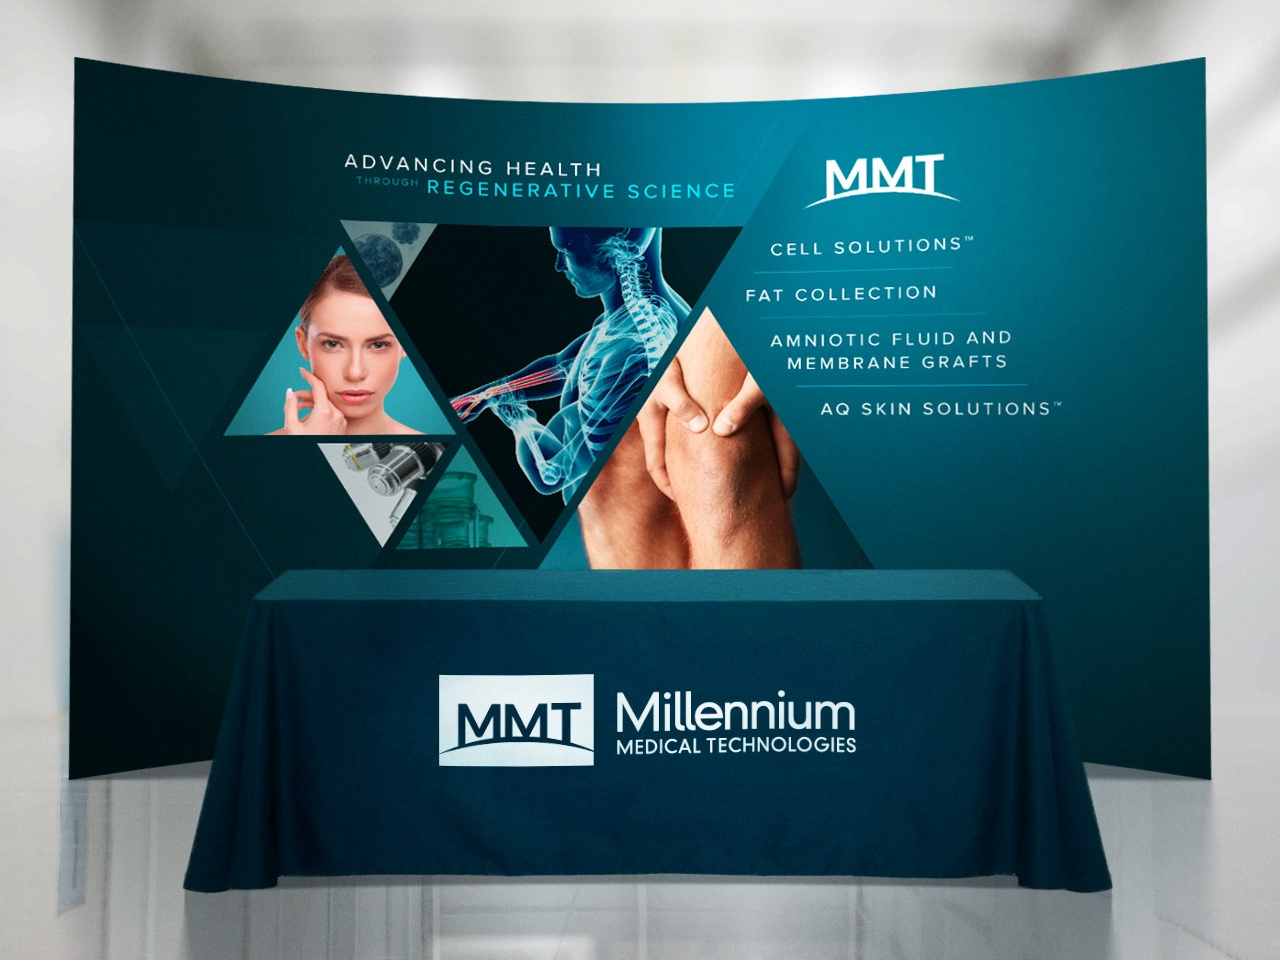 Millennium Medical Technologies (MMT) Tradeshow Print Banner Design by Salted Stone